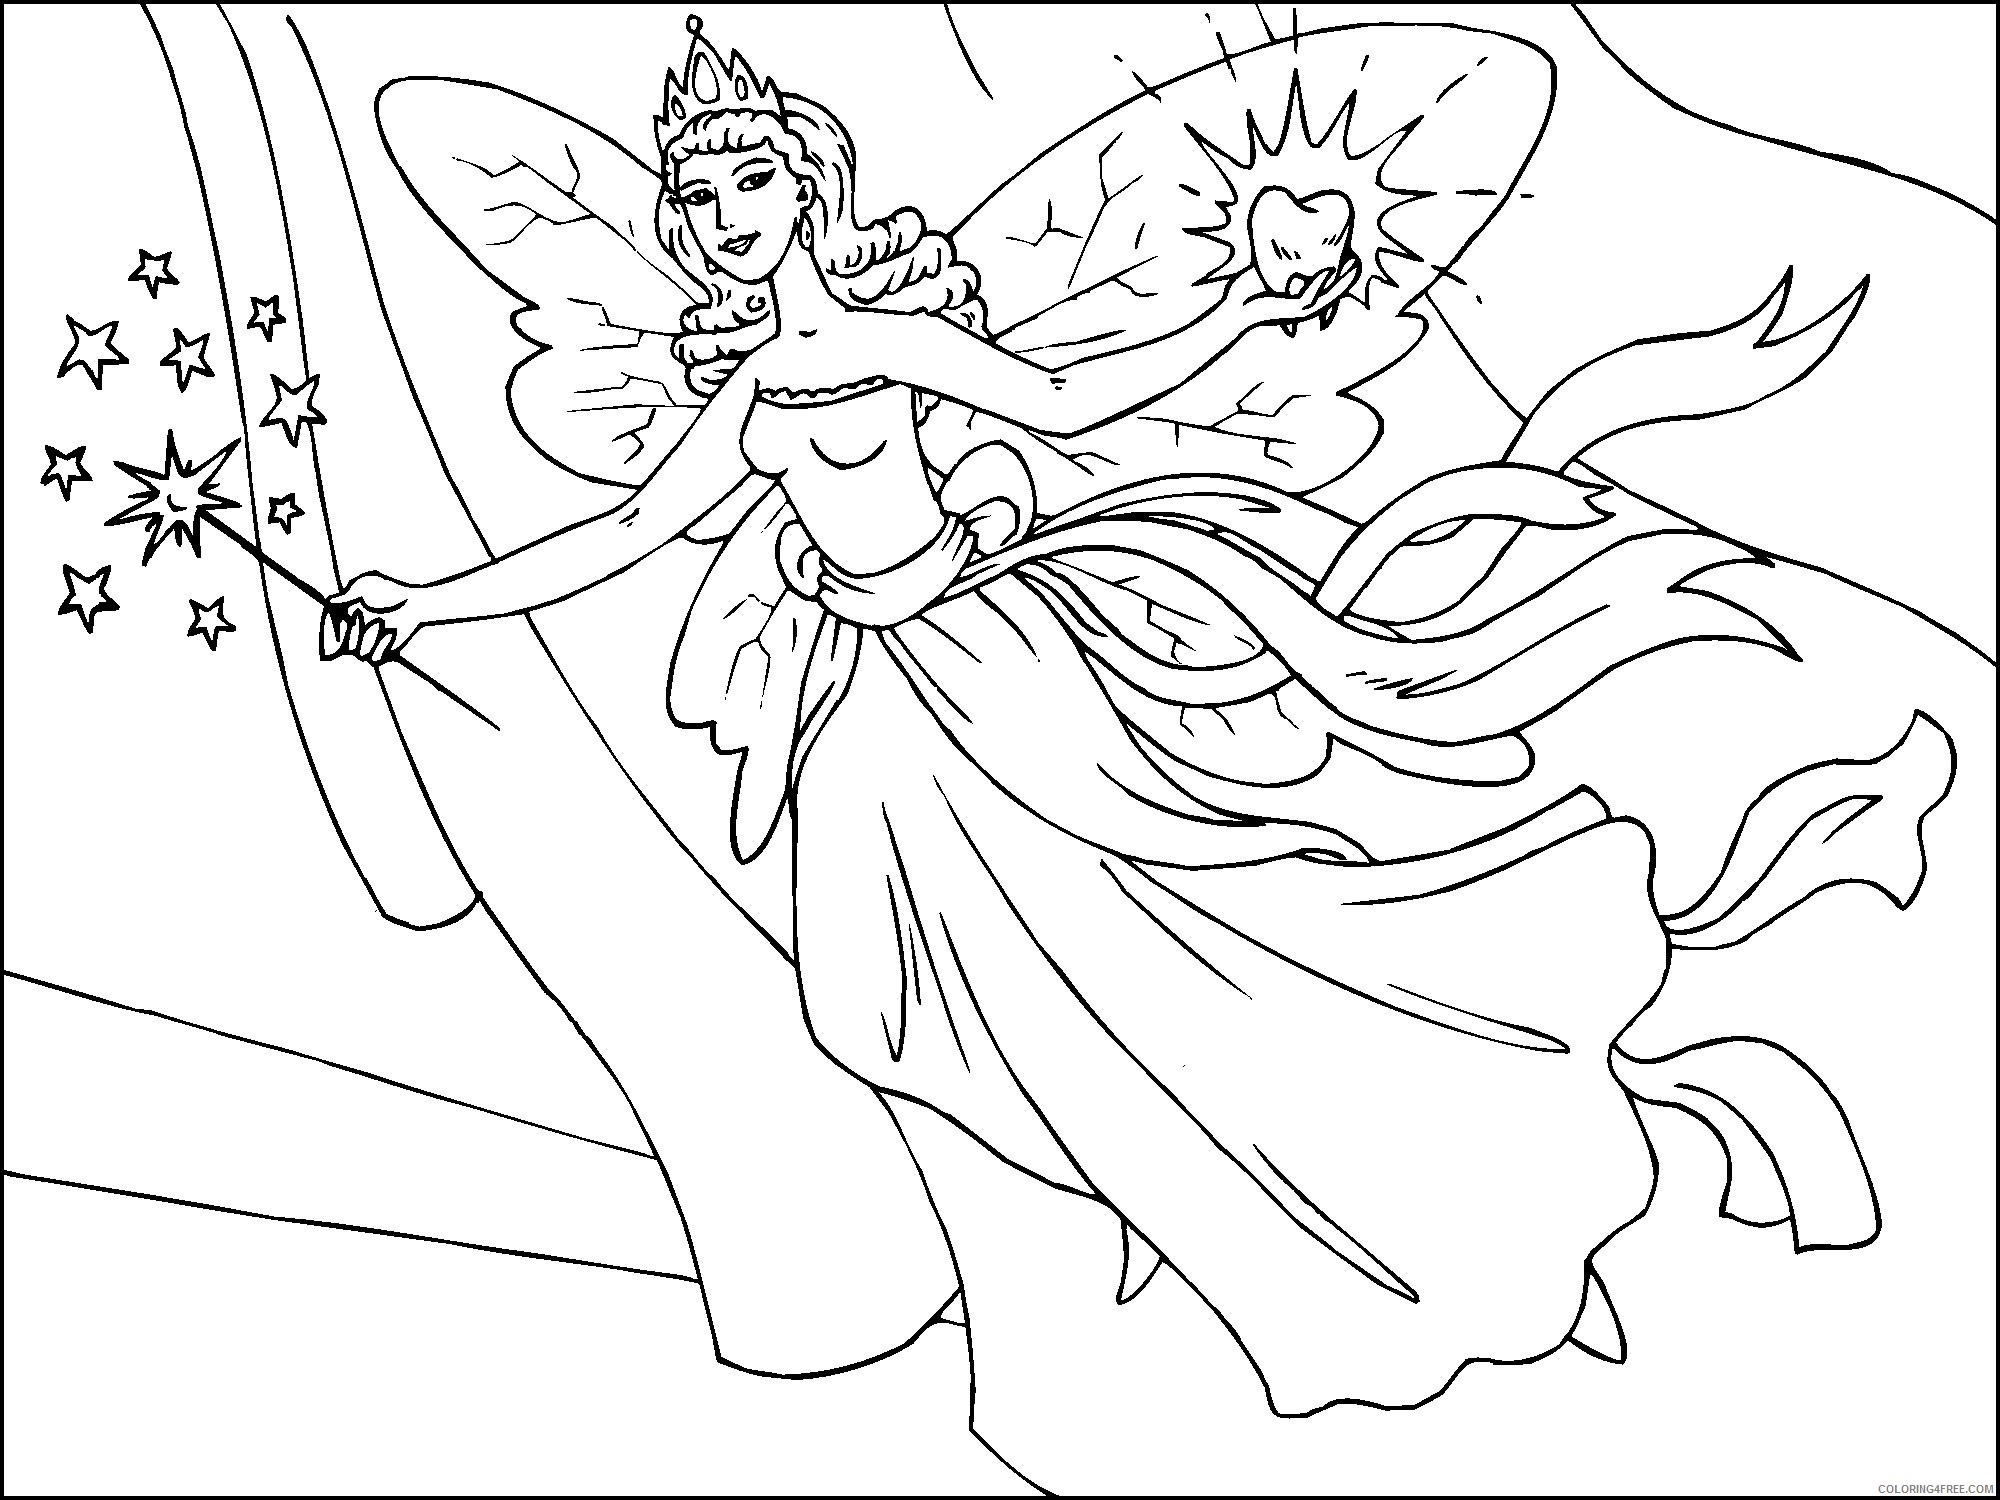 Free Final Fantasy 7 Coloring Pages, Download Free Clip Art, Free ... | 1500x2000